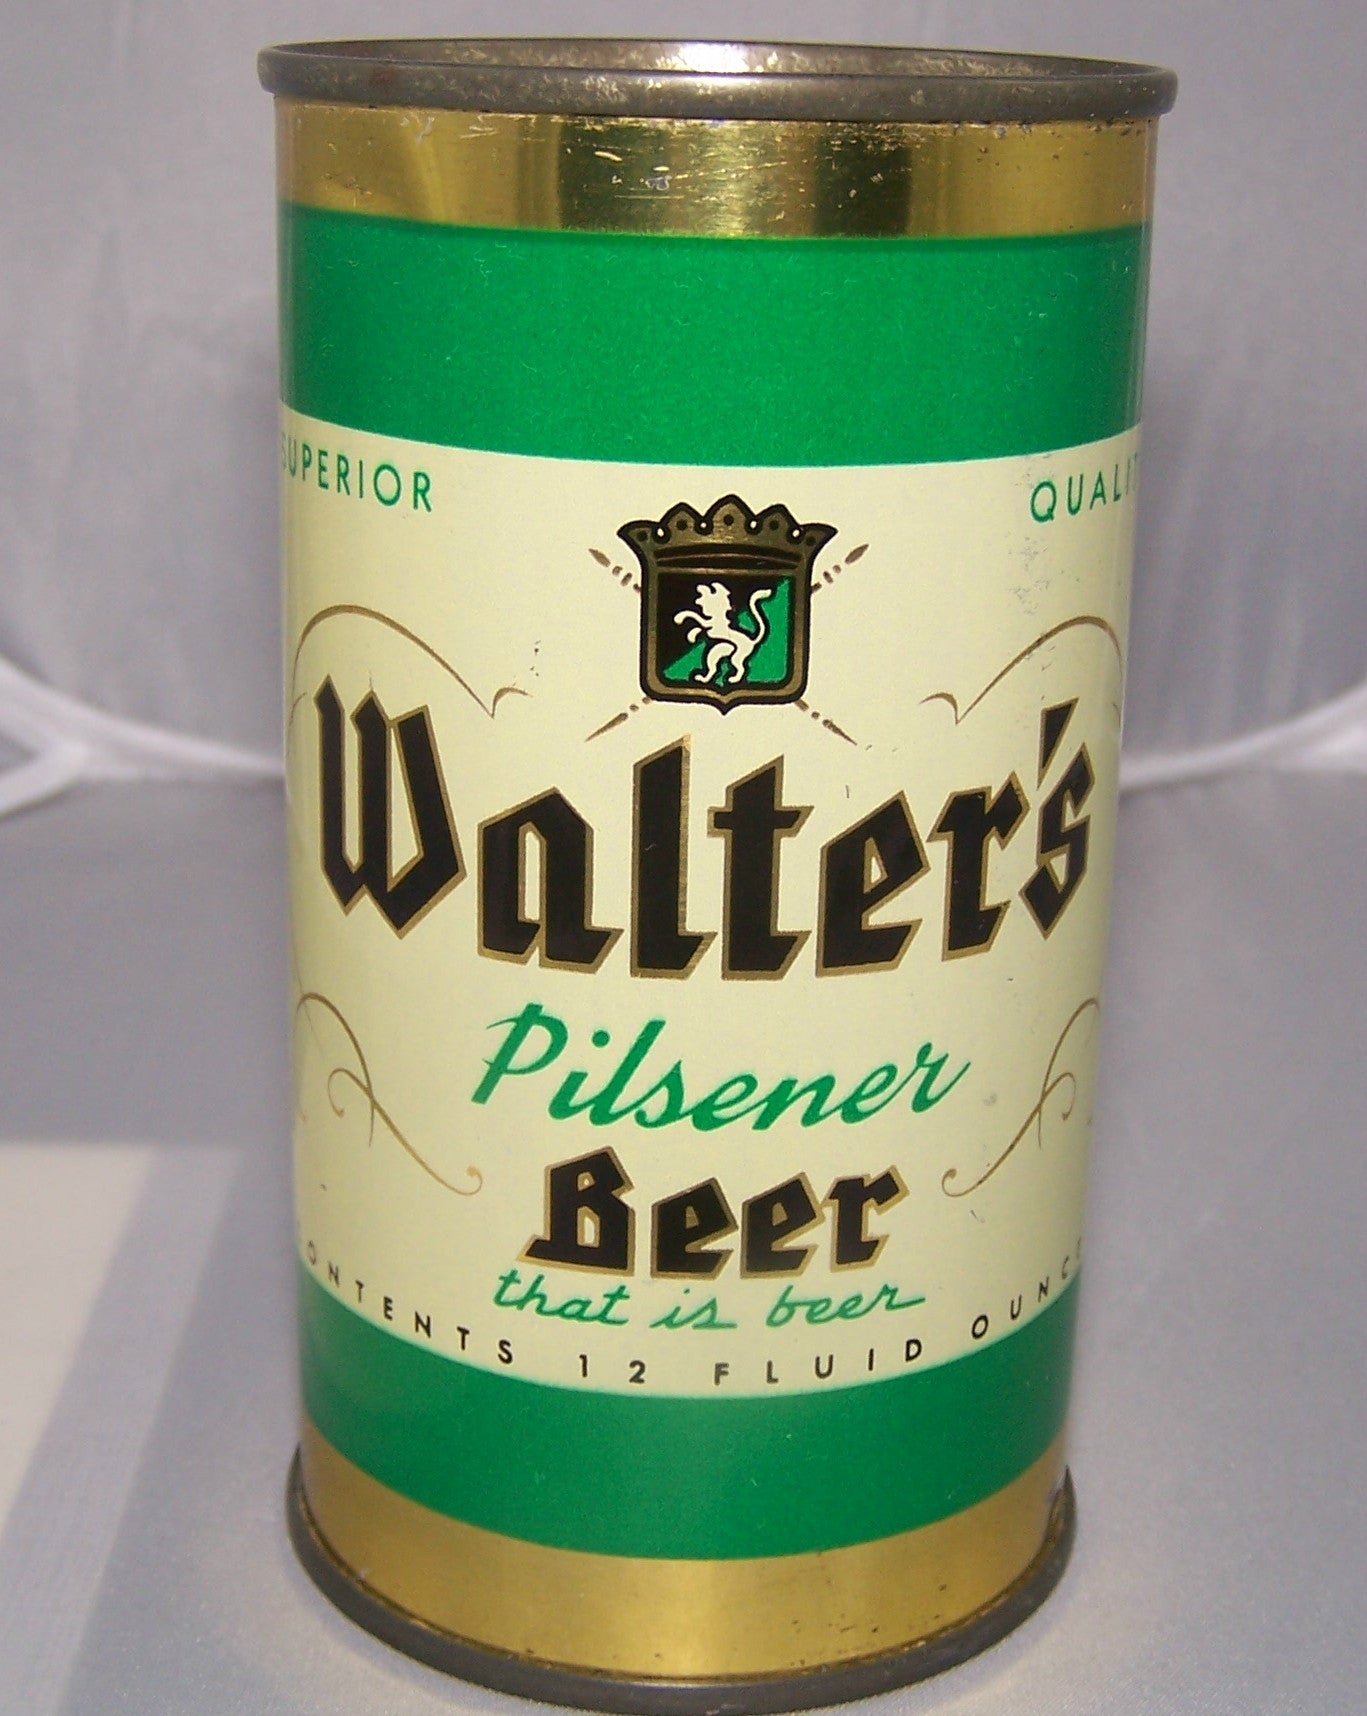 Walter's Pilsener Beer, USBC 144-21, Grade 1/1+ Sold on 2/22/15